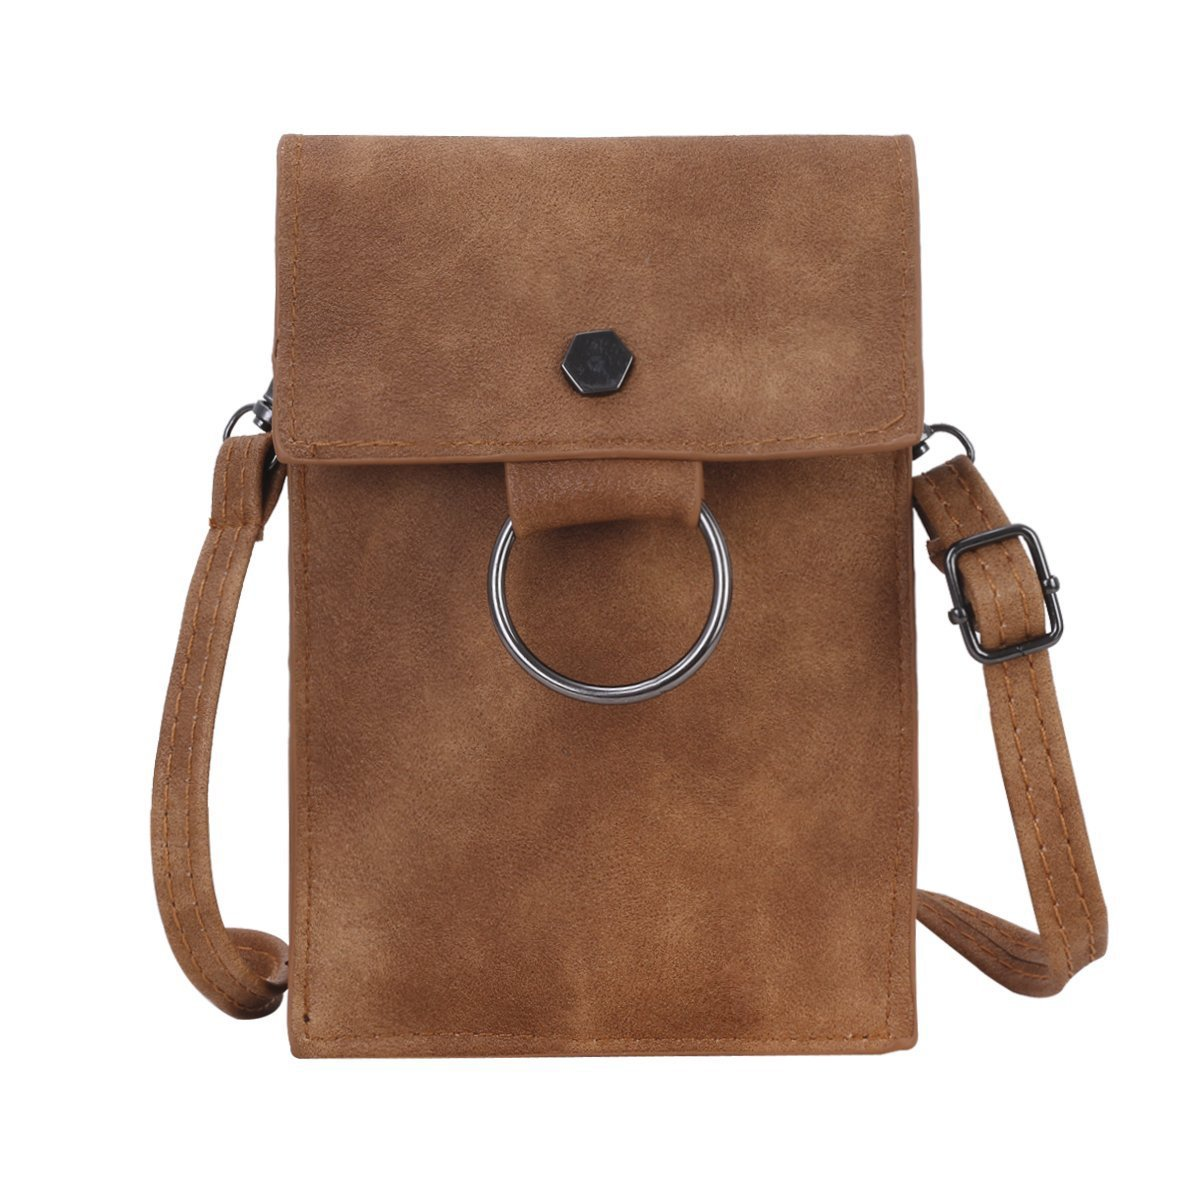 Bthdhk 6'' Stylish PU Leather Small Crossbody Shoulder Bag with Strap for Women Smartphone - Brown